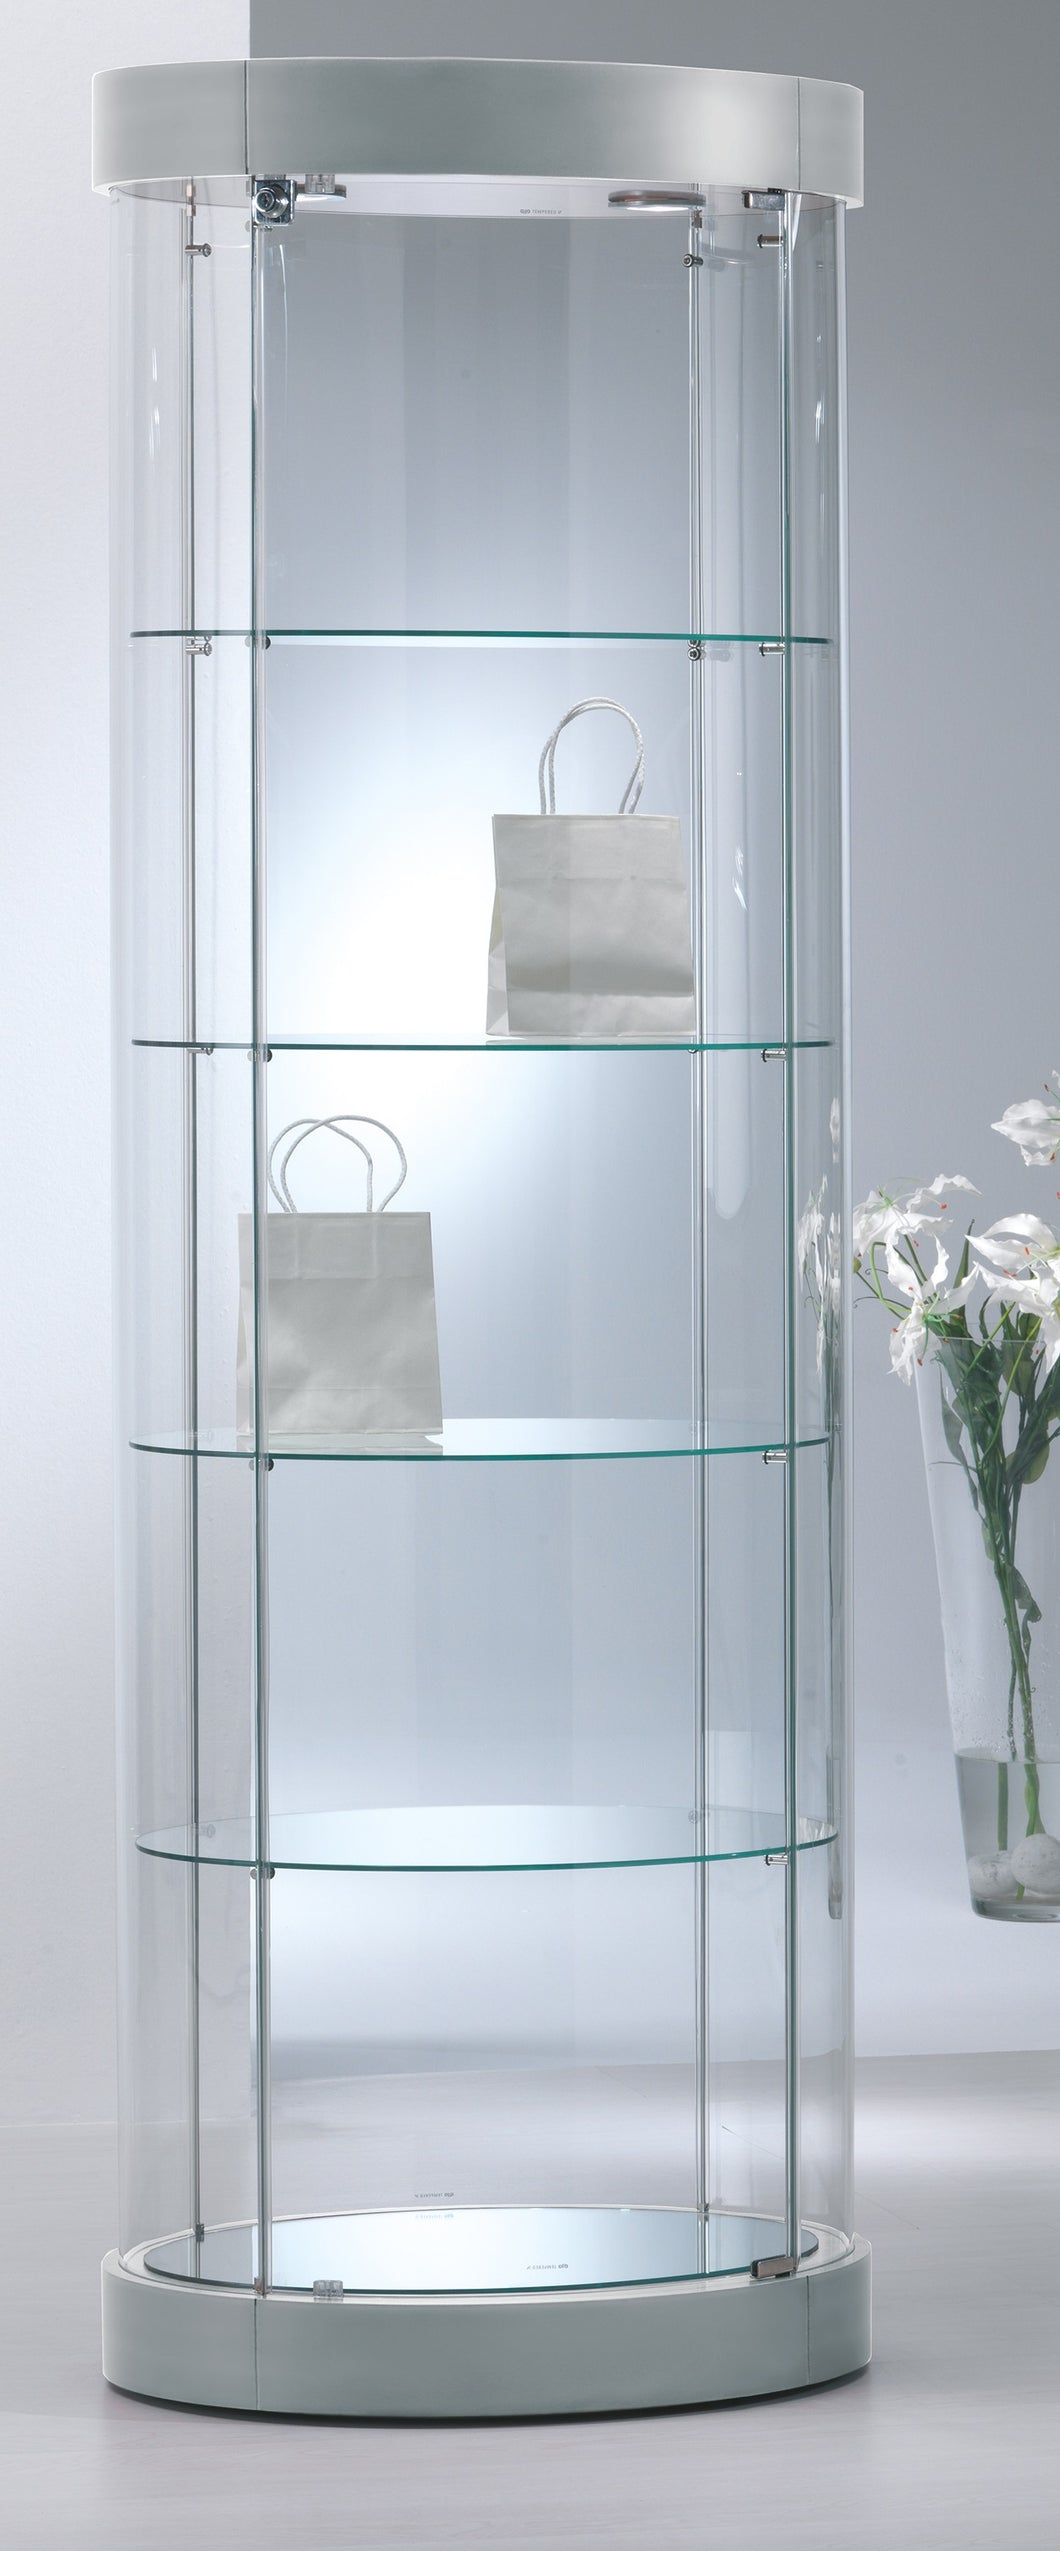 Elegance Oval Display Showcase